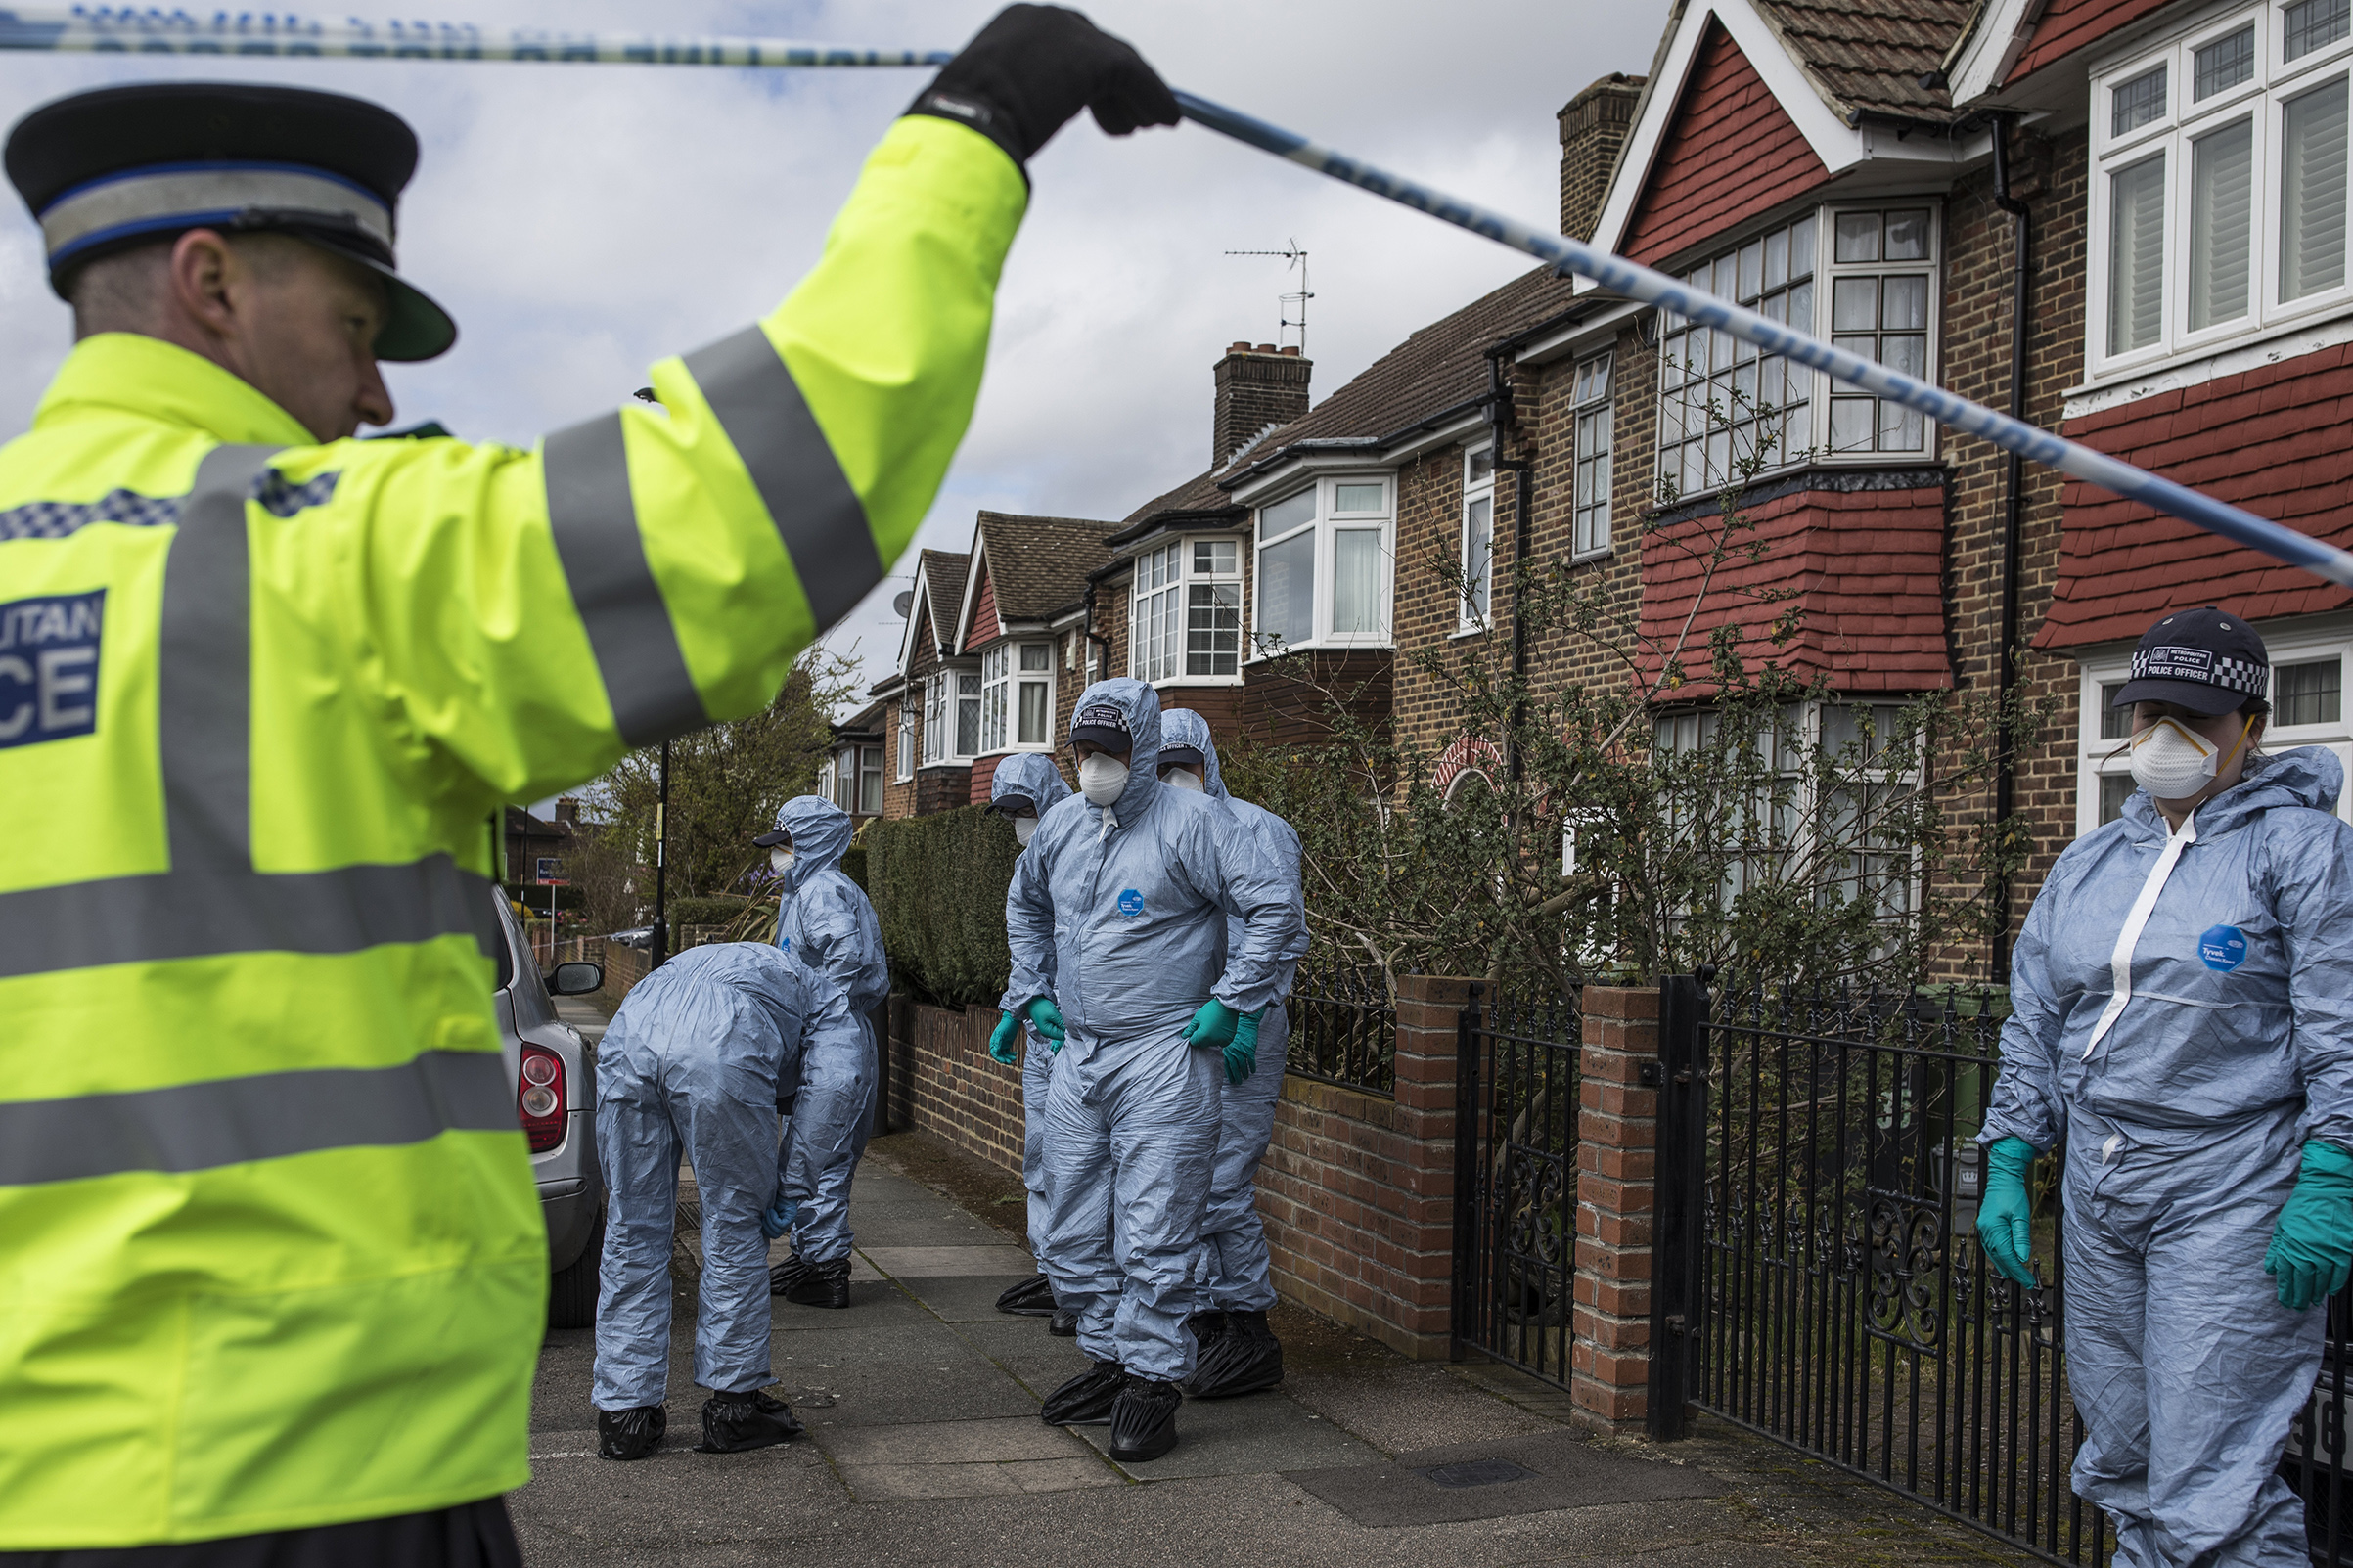 A forensics team searches a street where a man died after a robbery on April 4 in London;                      there were more murders in March in London than in any other month in over a decade